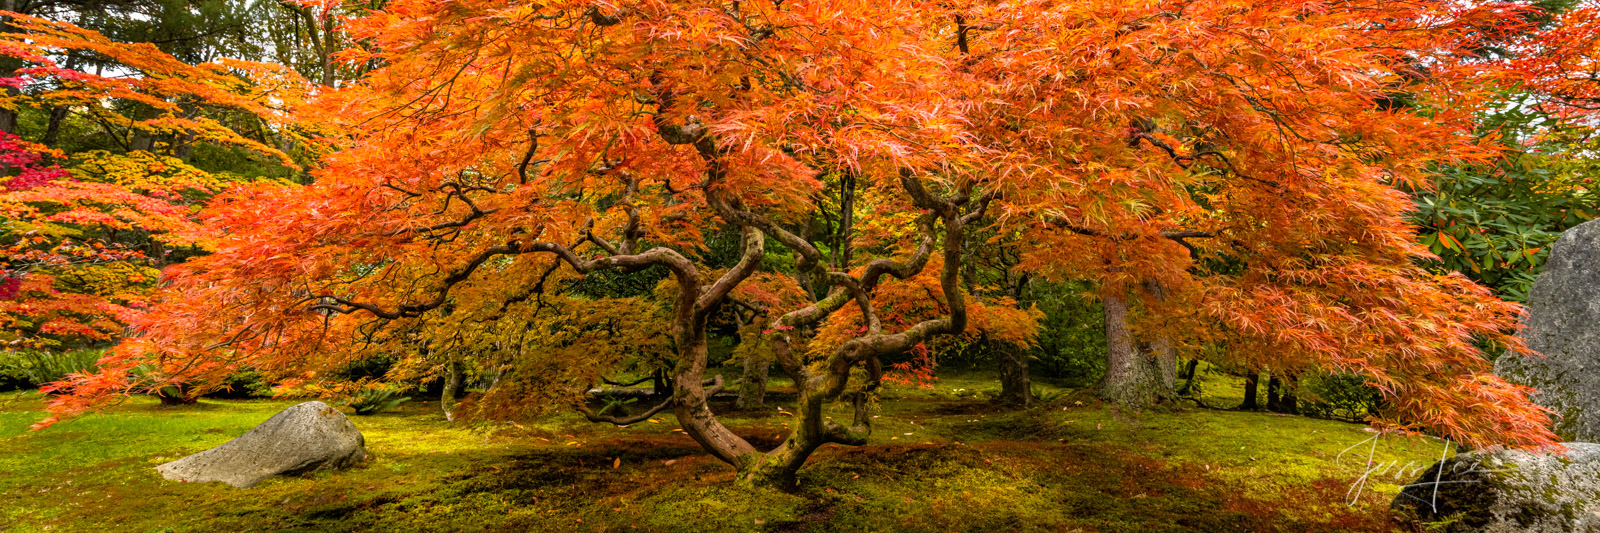 A limited edition fine art photographic print of 50 archival Museum Quality artworks of this beautiful Japanese Maple Tree in...